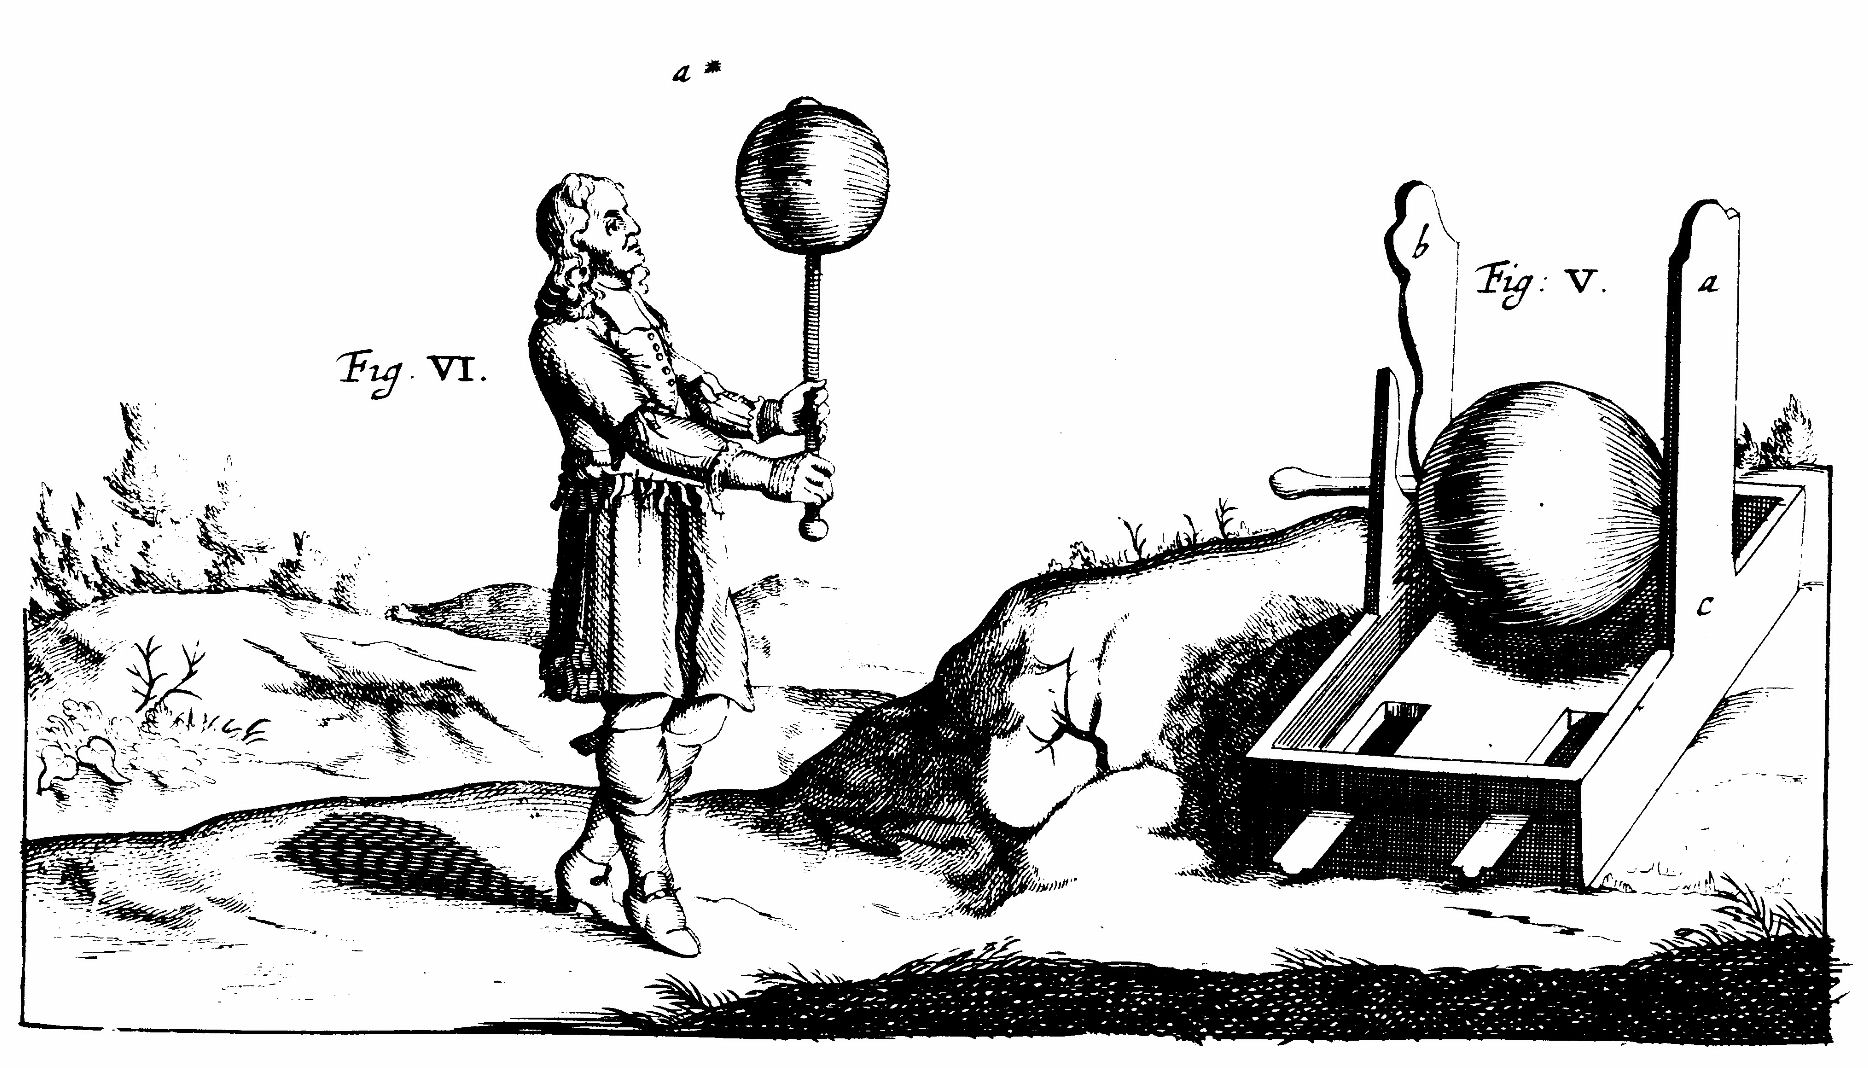 History of Electric Comet Theory: An Introduction